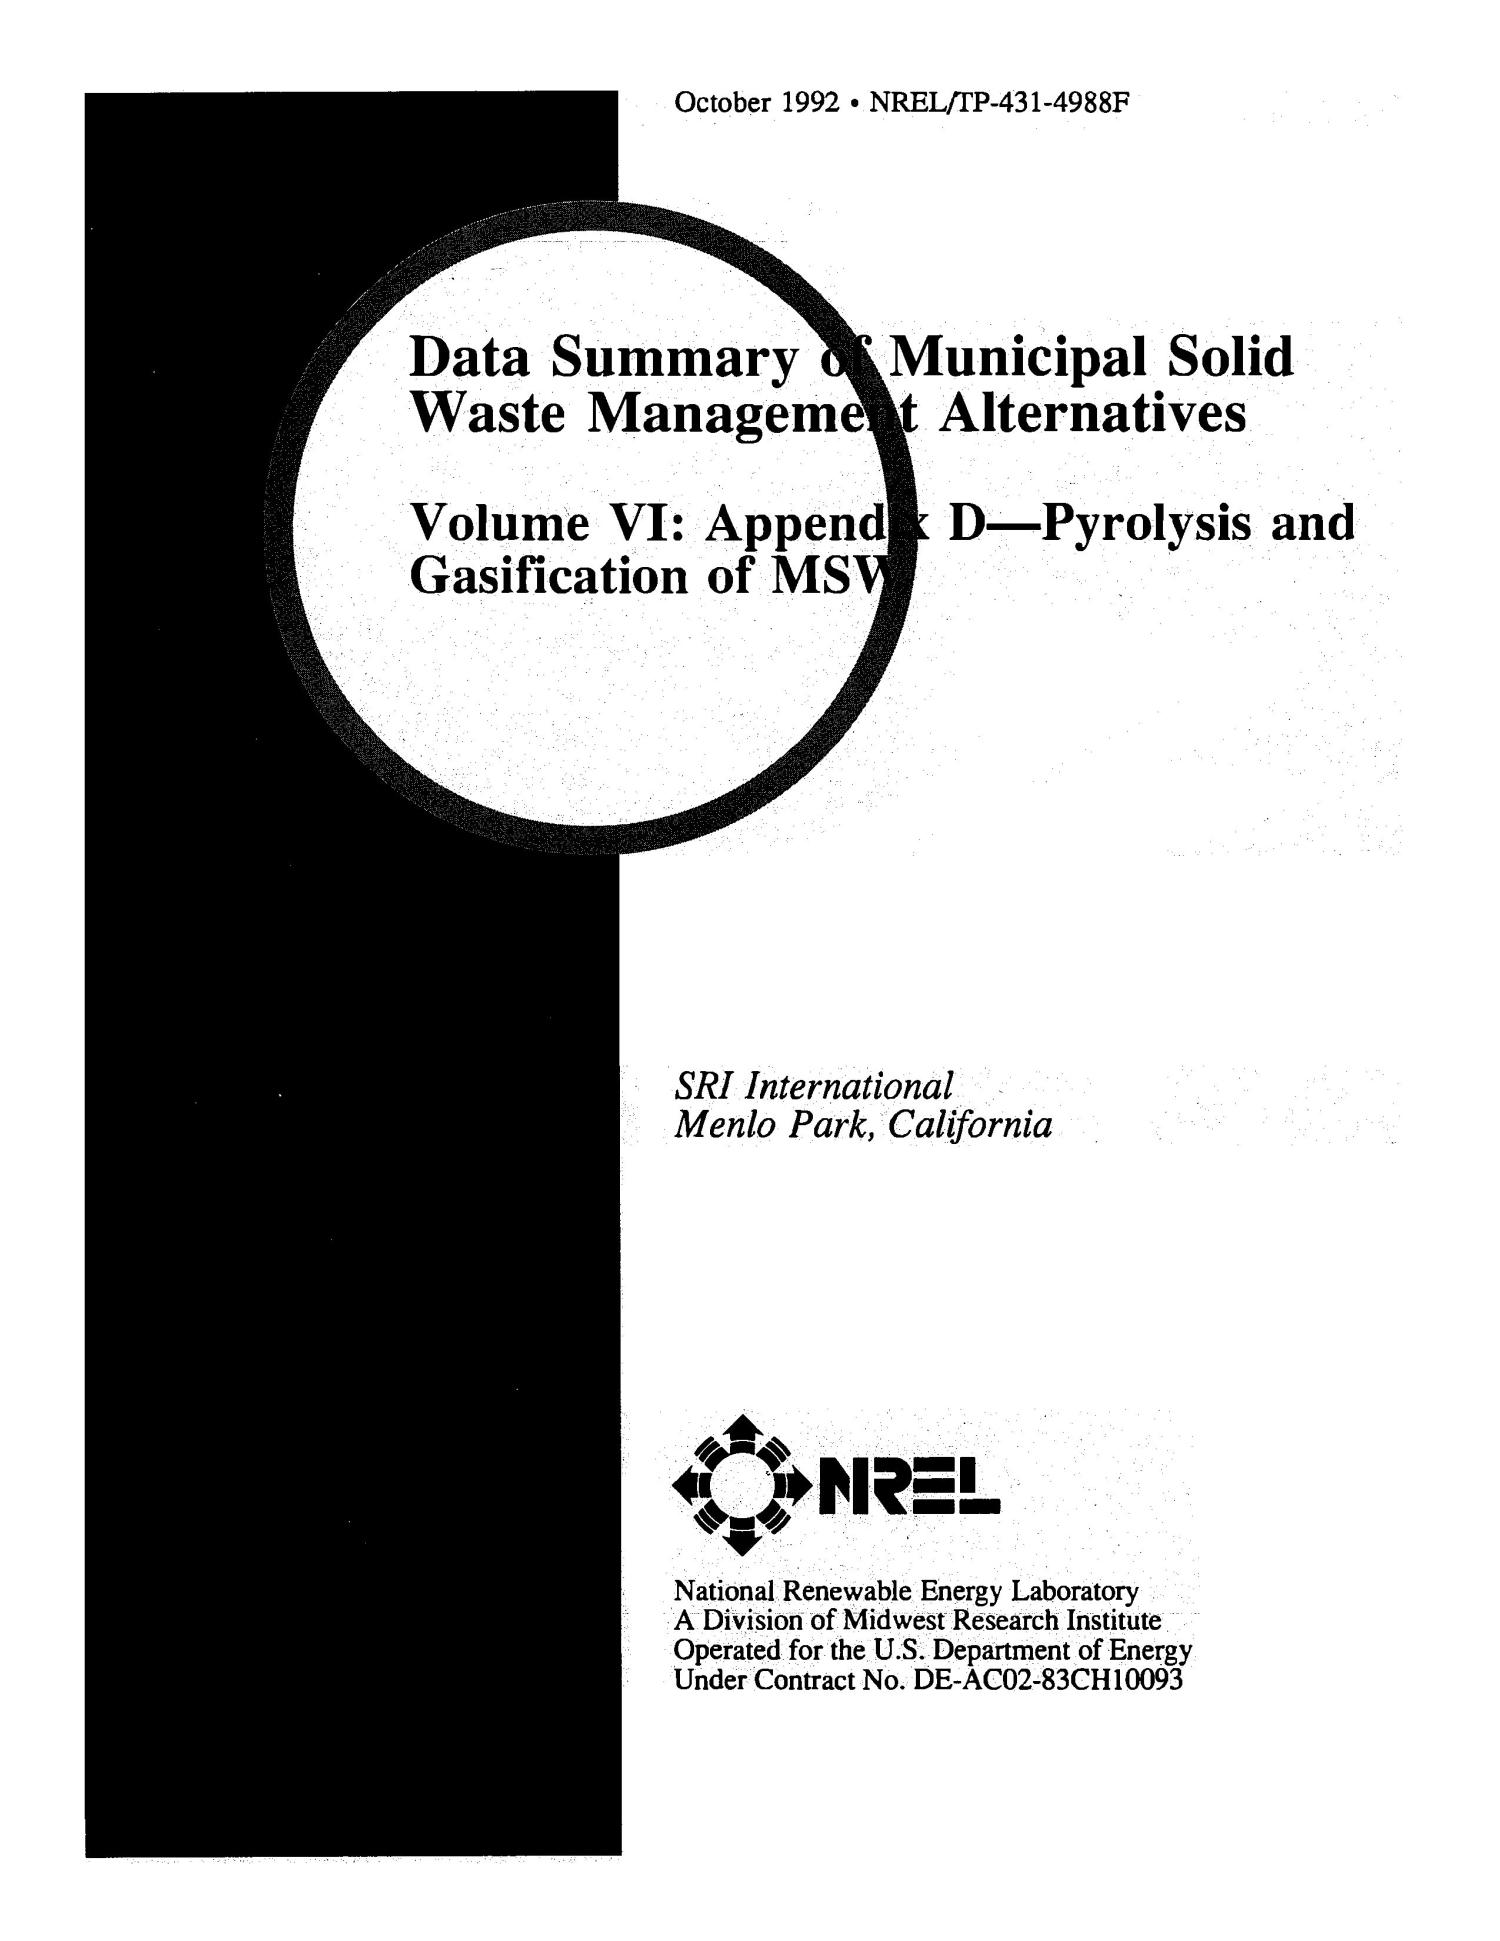 Data Summary of Municipal Solid Waste Management Alternatives, Volume 6: Appendix D--Pyrolysis and Gasification of MSW                                                                                                      [Sequence #]: 1 of 62